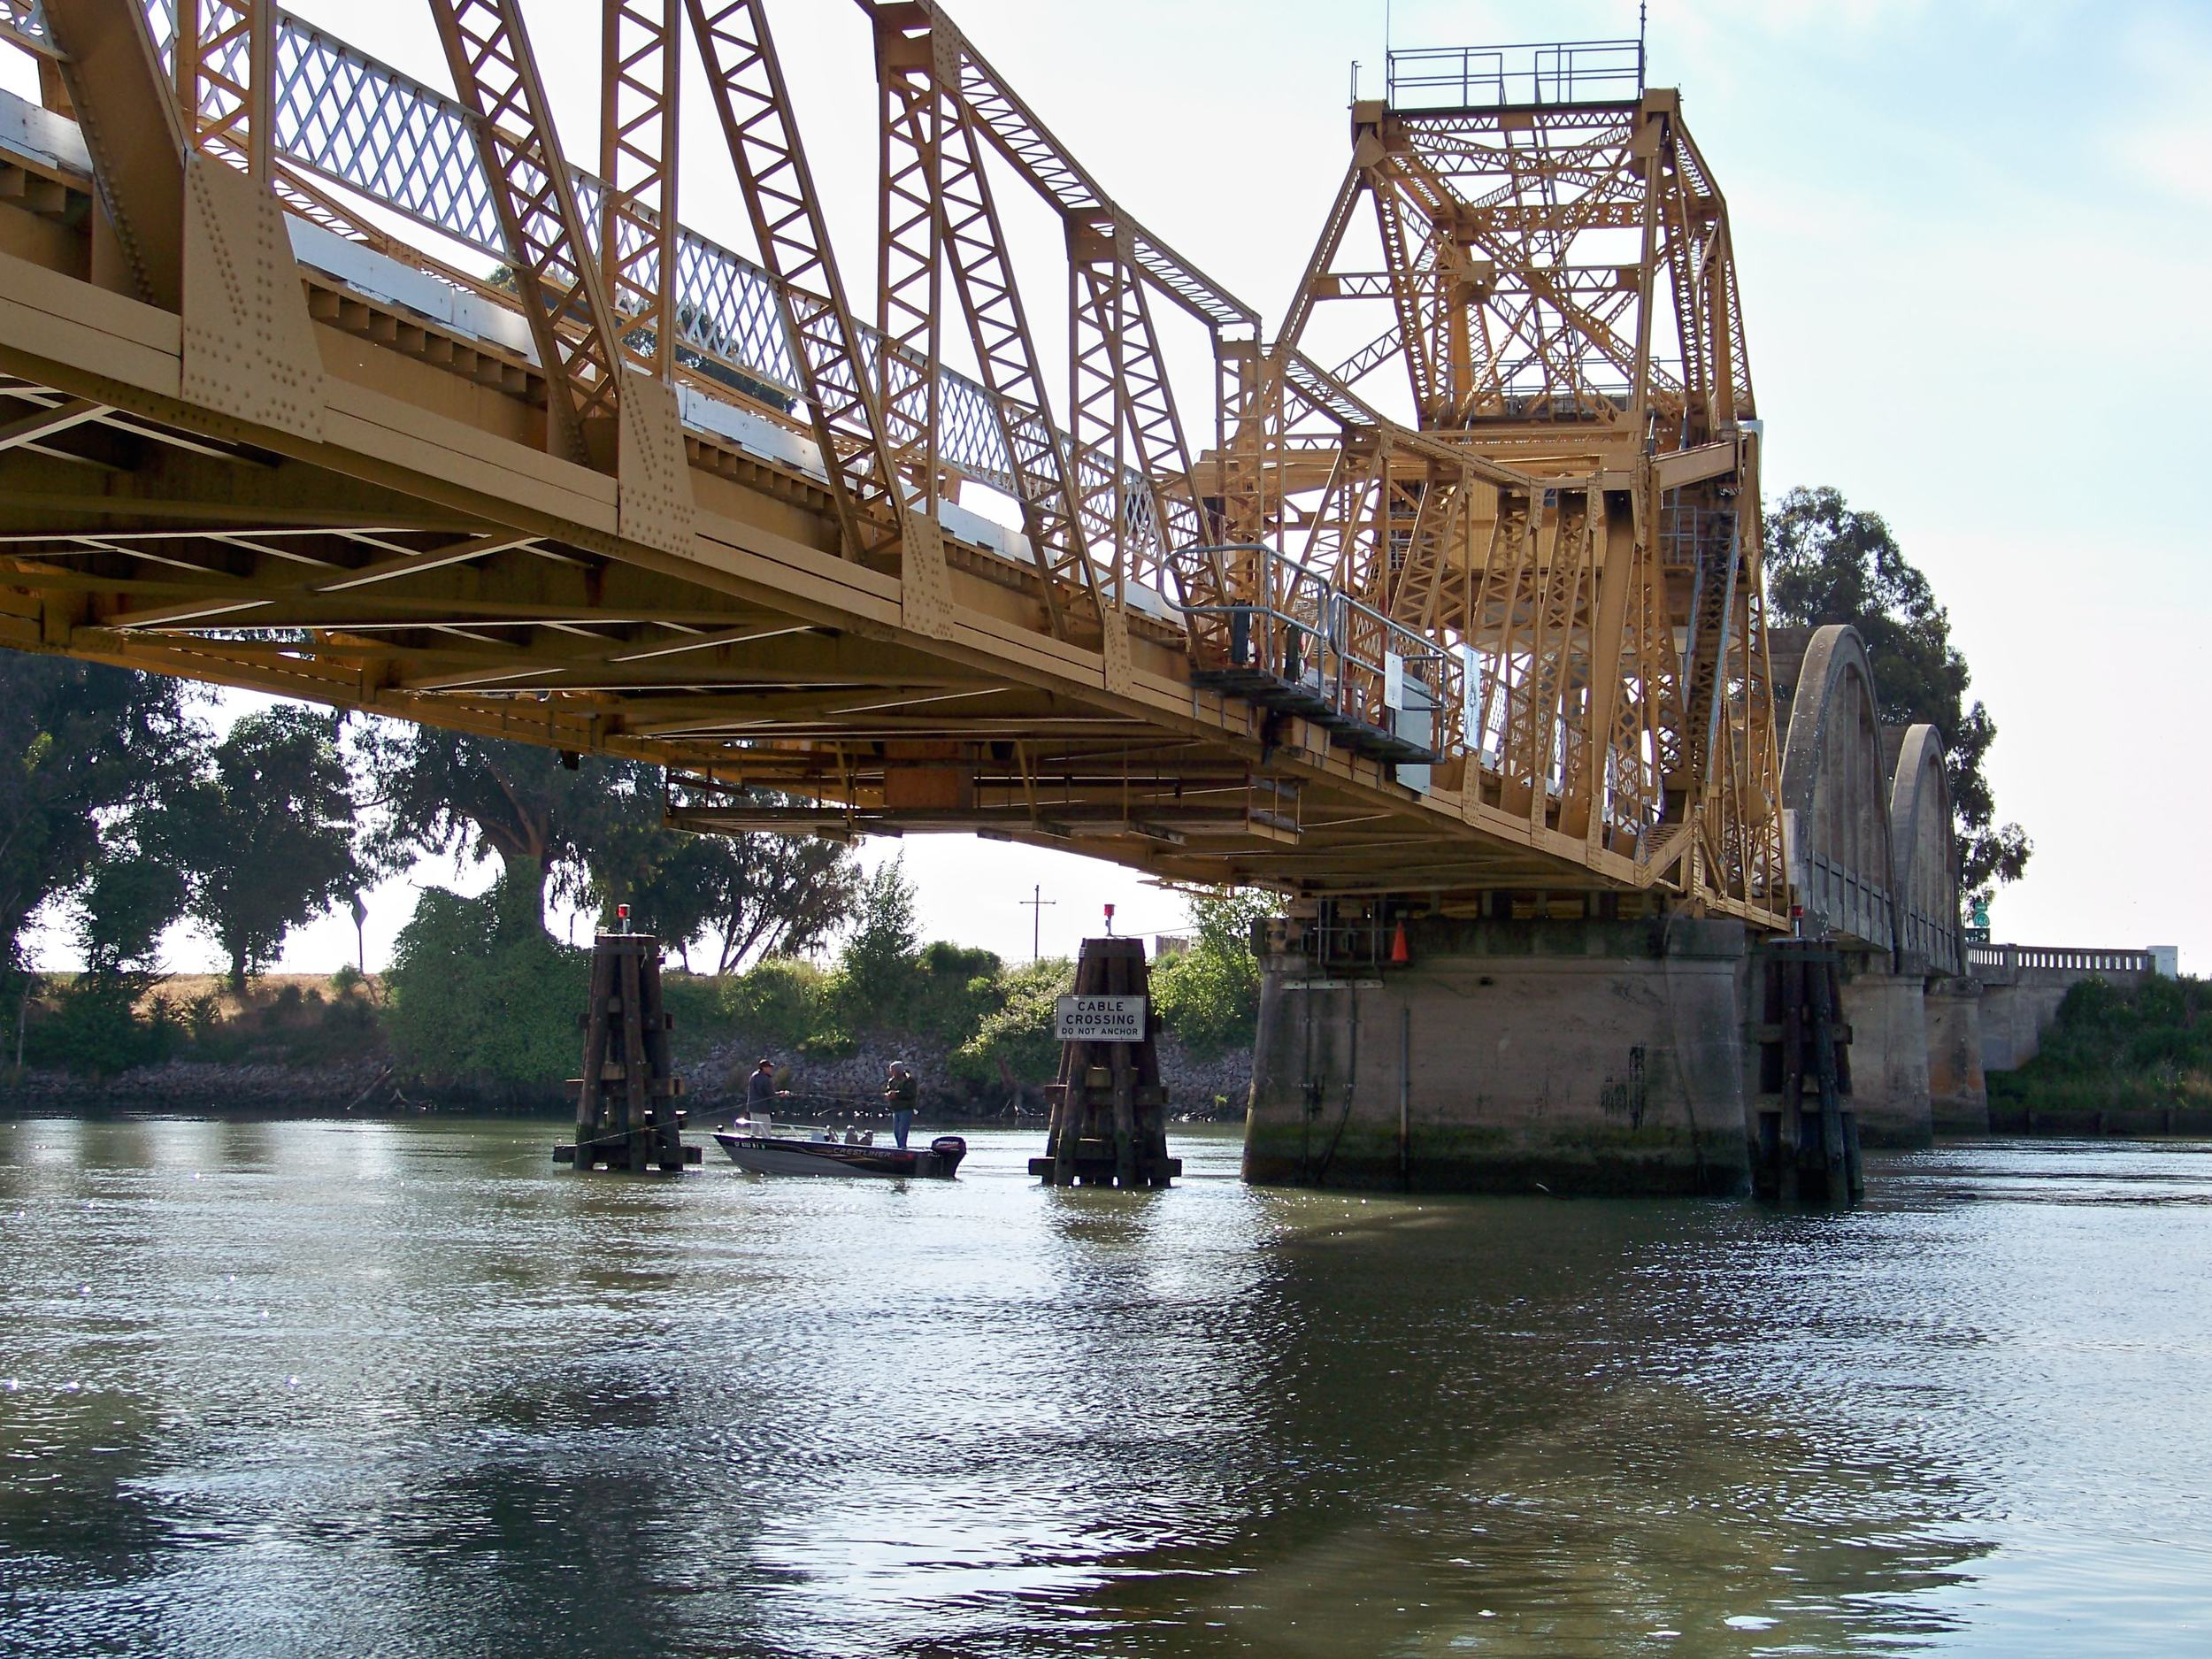 One of the many bridges that rotate for ship and large boat traffic